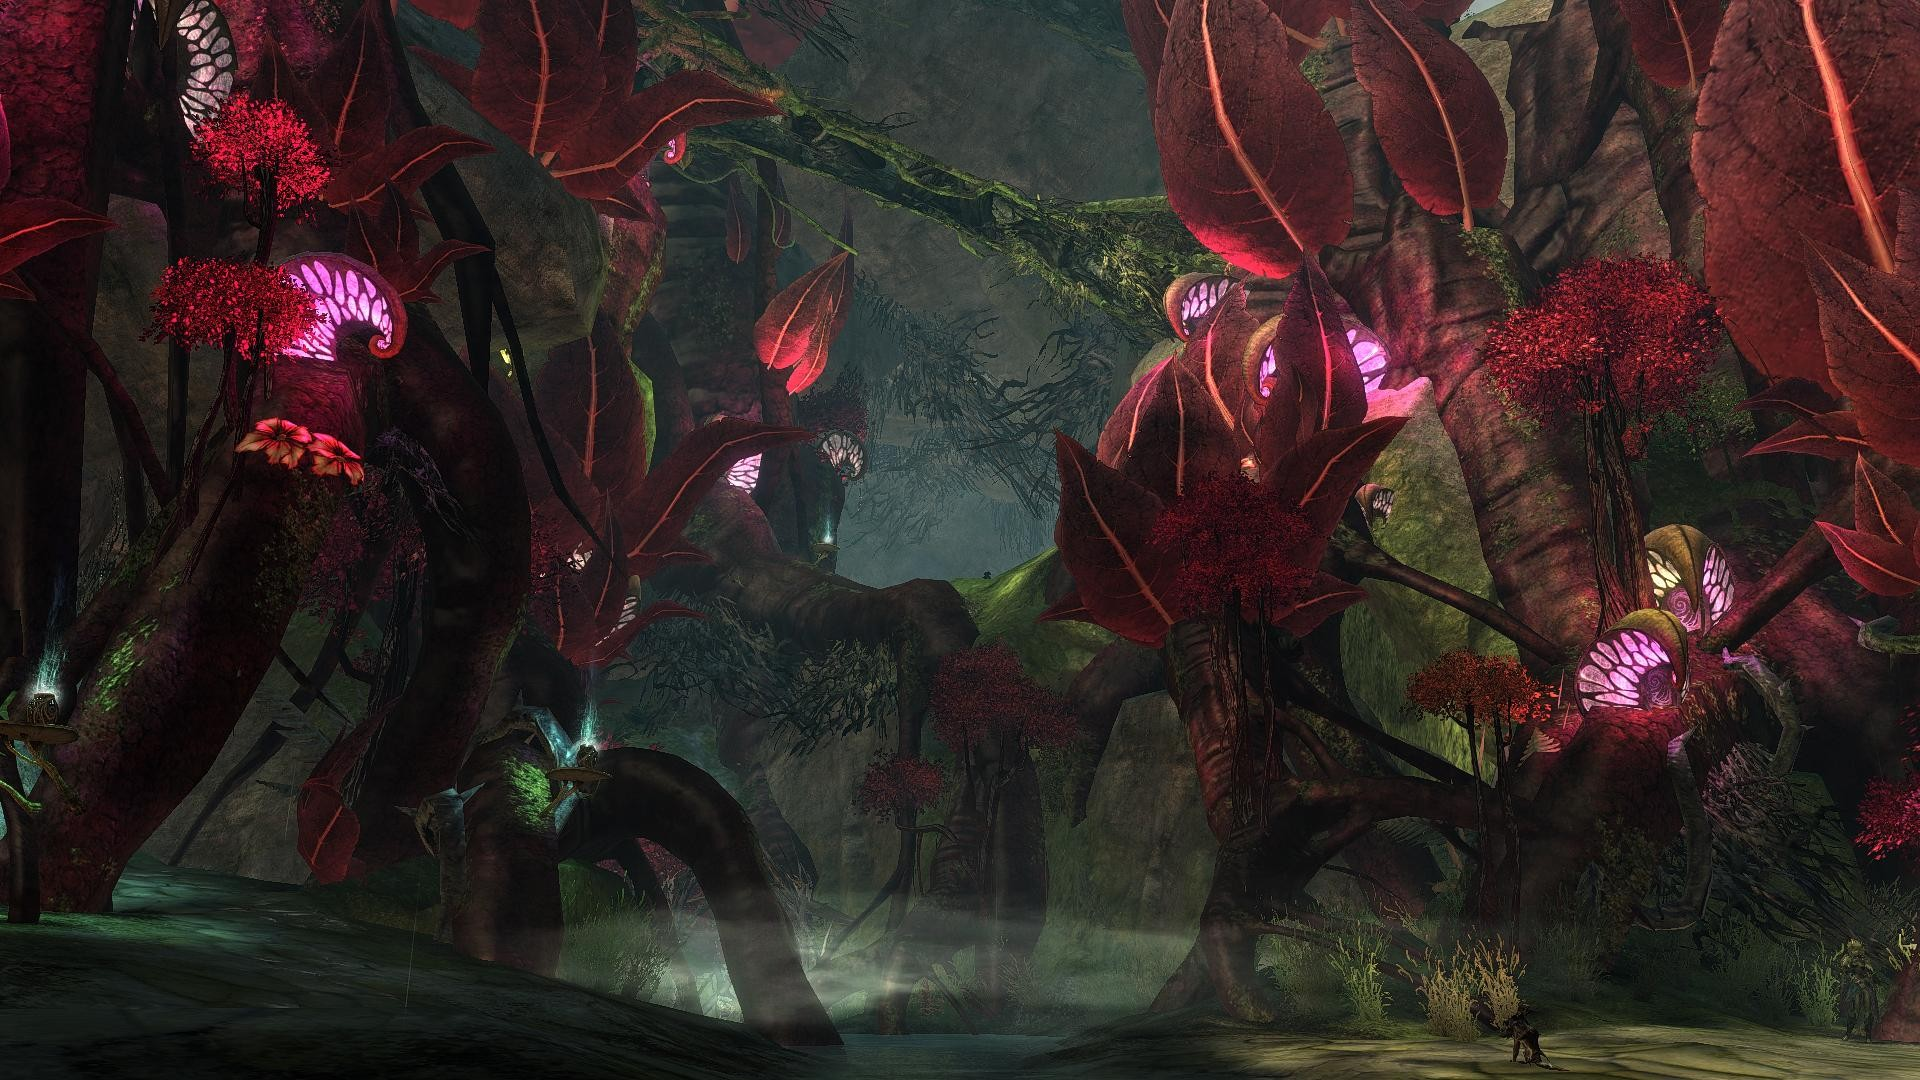 GW2-Awesomeness. Using Sweet FX adon on this pic!